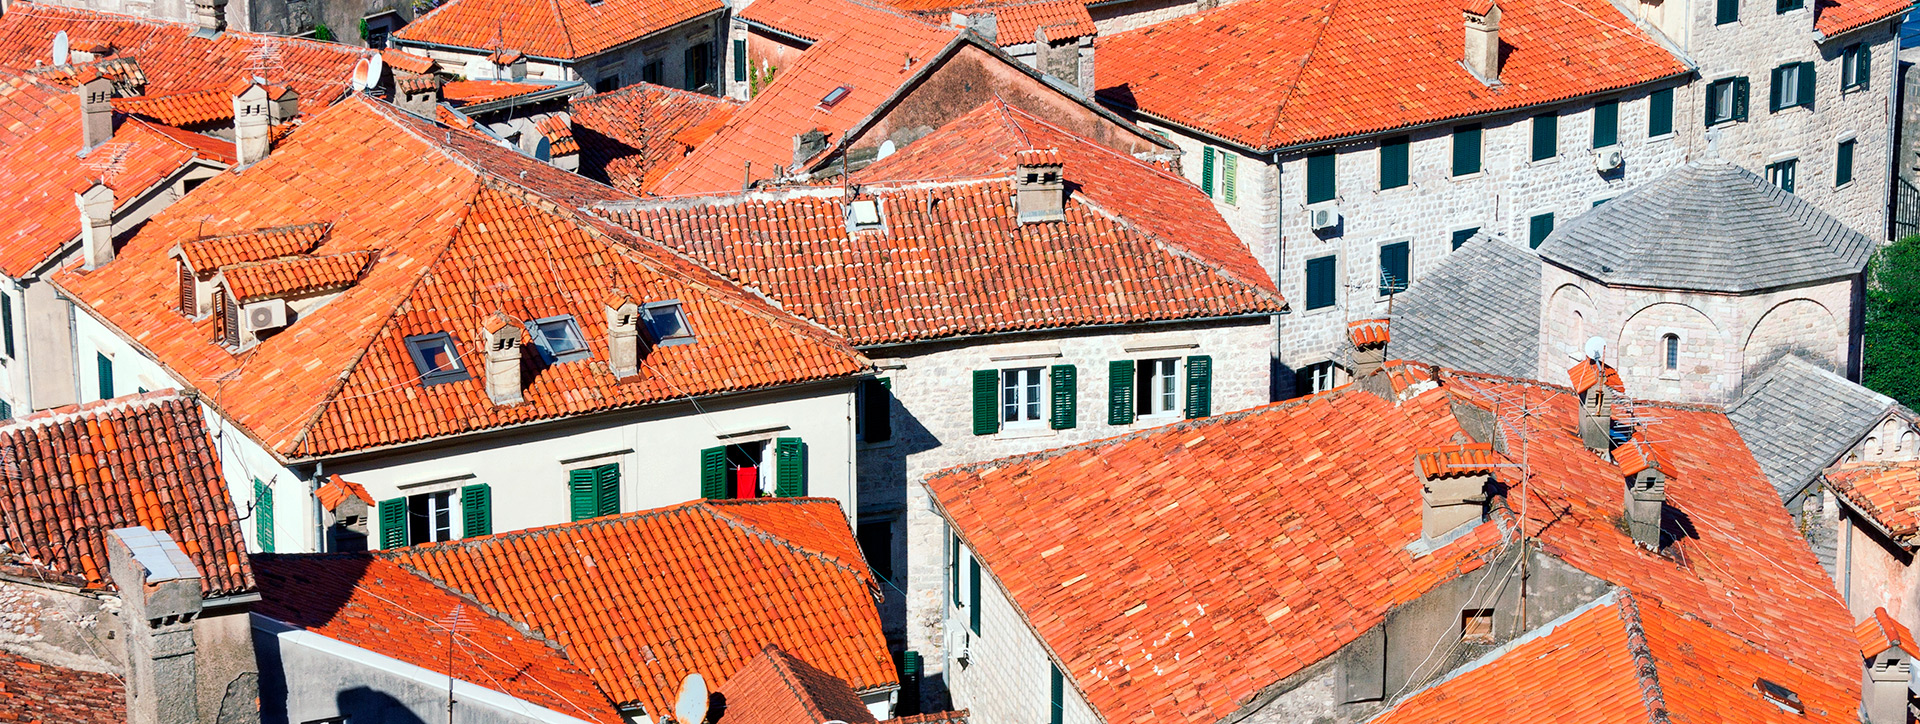 The rooftops of the city, Perast, Montenegro - SimpleSail sailing routes